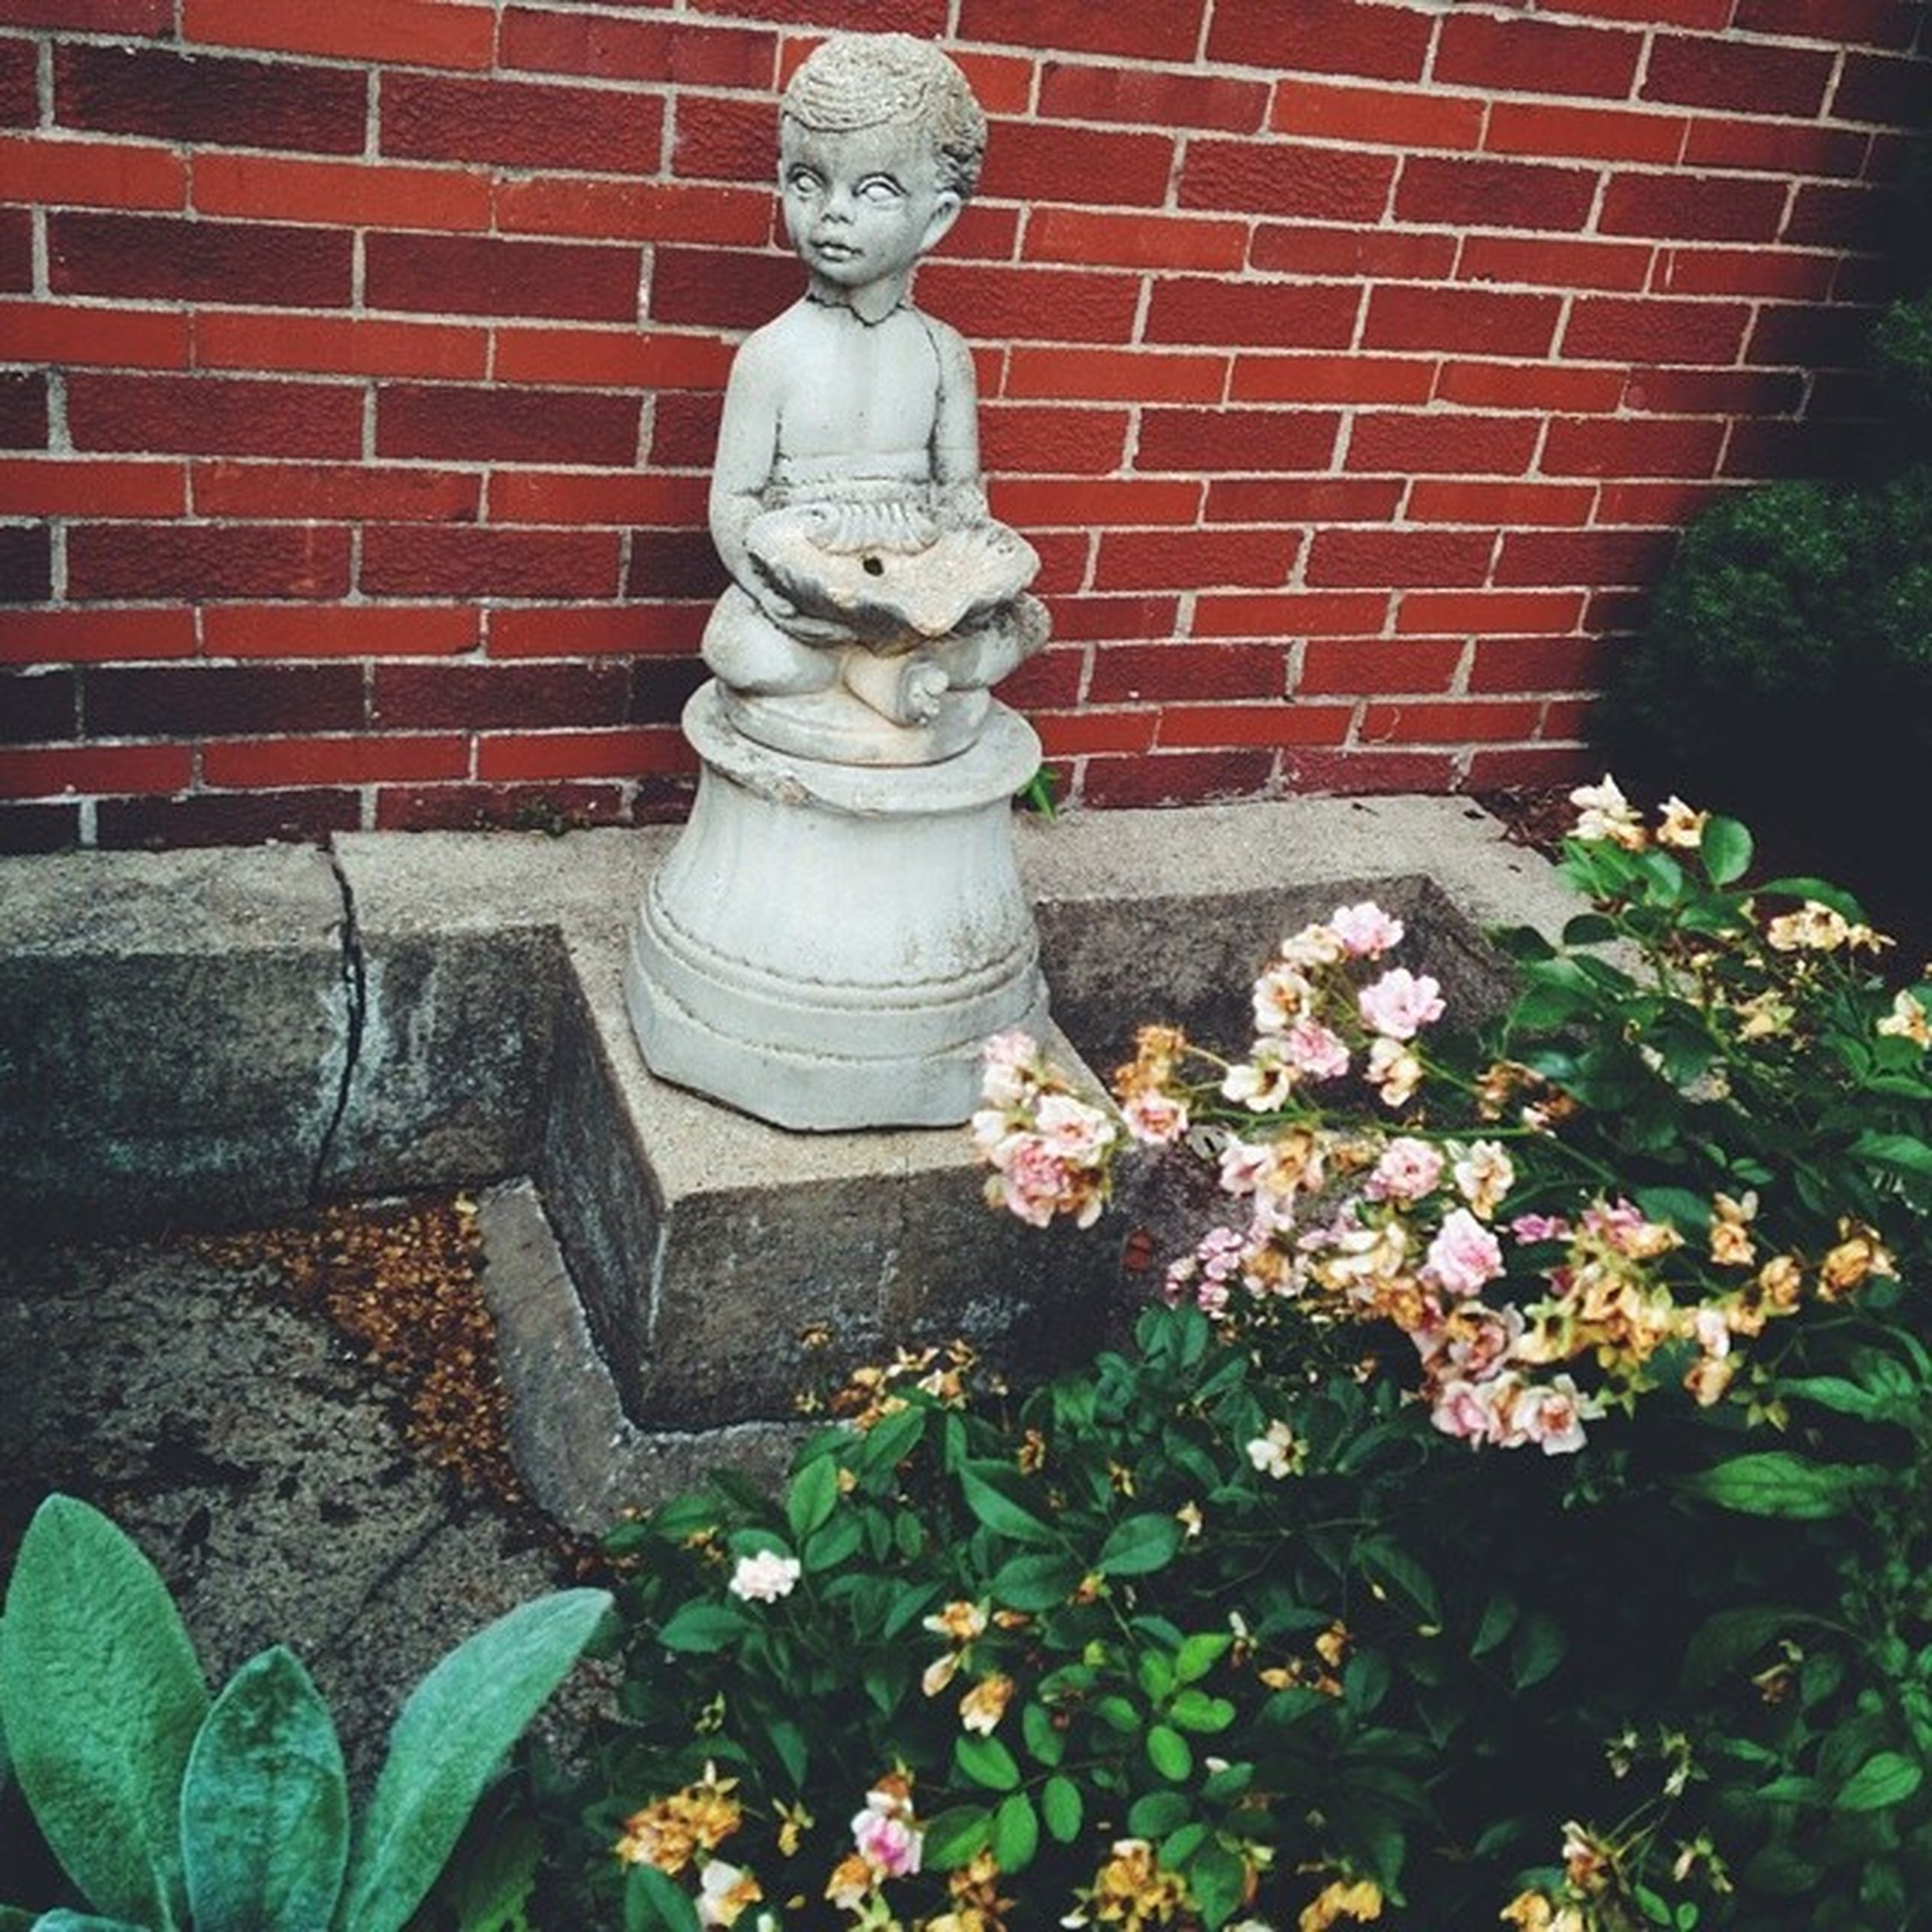 statue, human representation, sculpture, art and craft, art, flower, creativity, plant, built structure, architecture, building exterior, growth, stone material, day, carving - craft product, no people, outdoors, wall - building feature